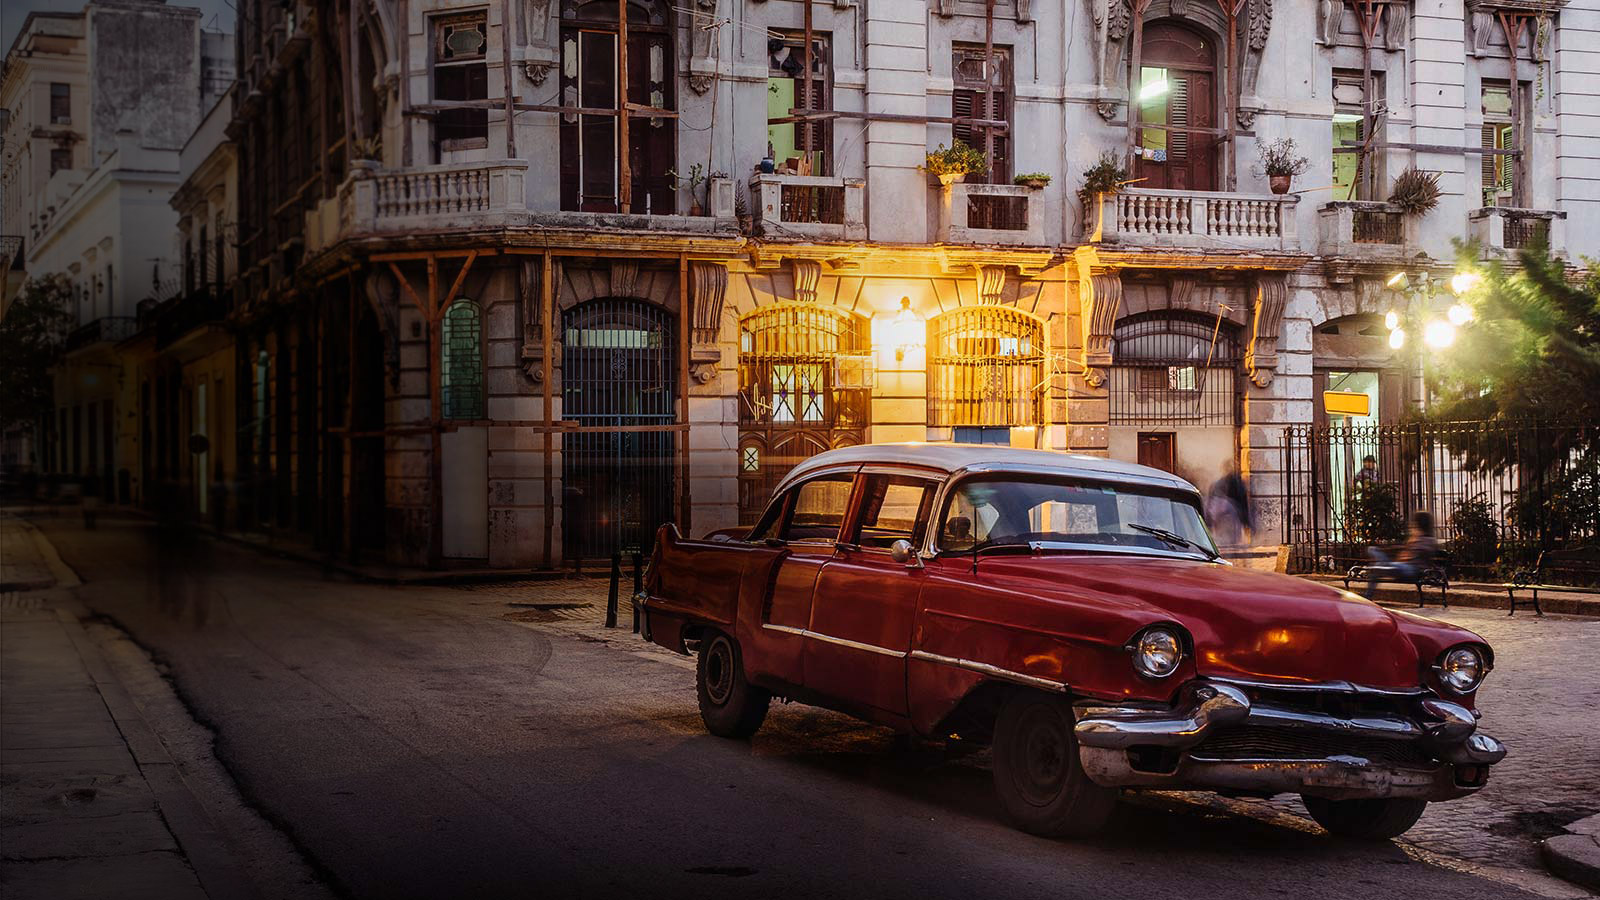 A classic car next to an old European residential city area